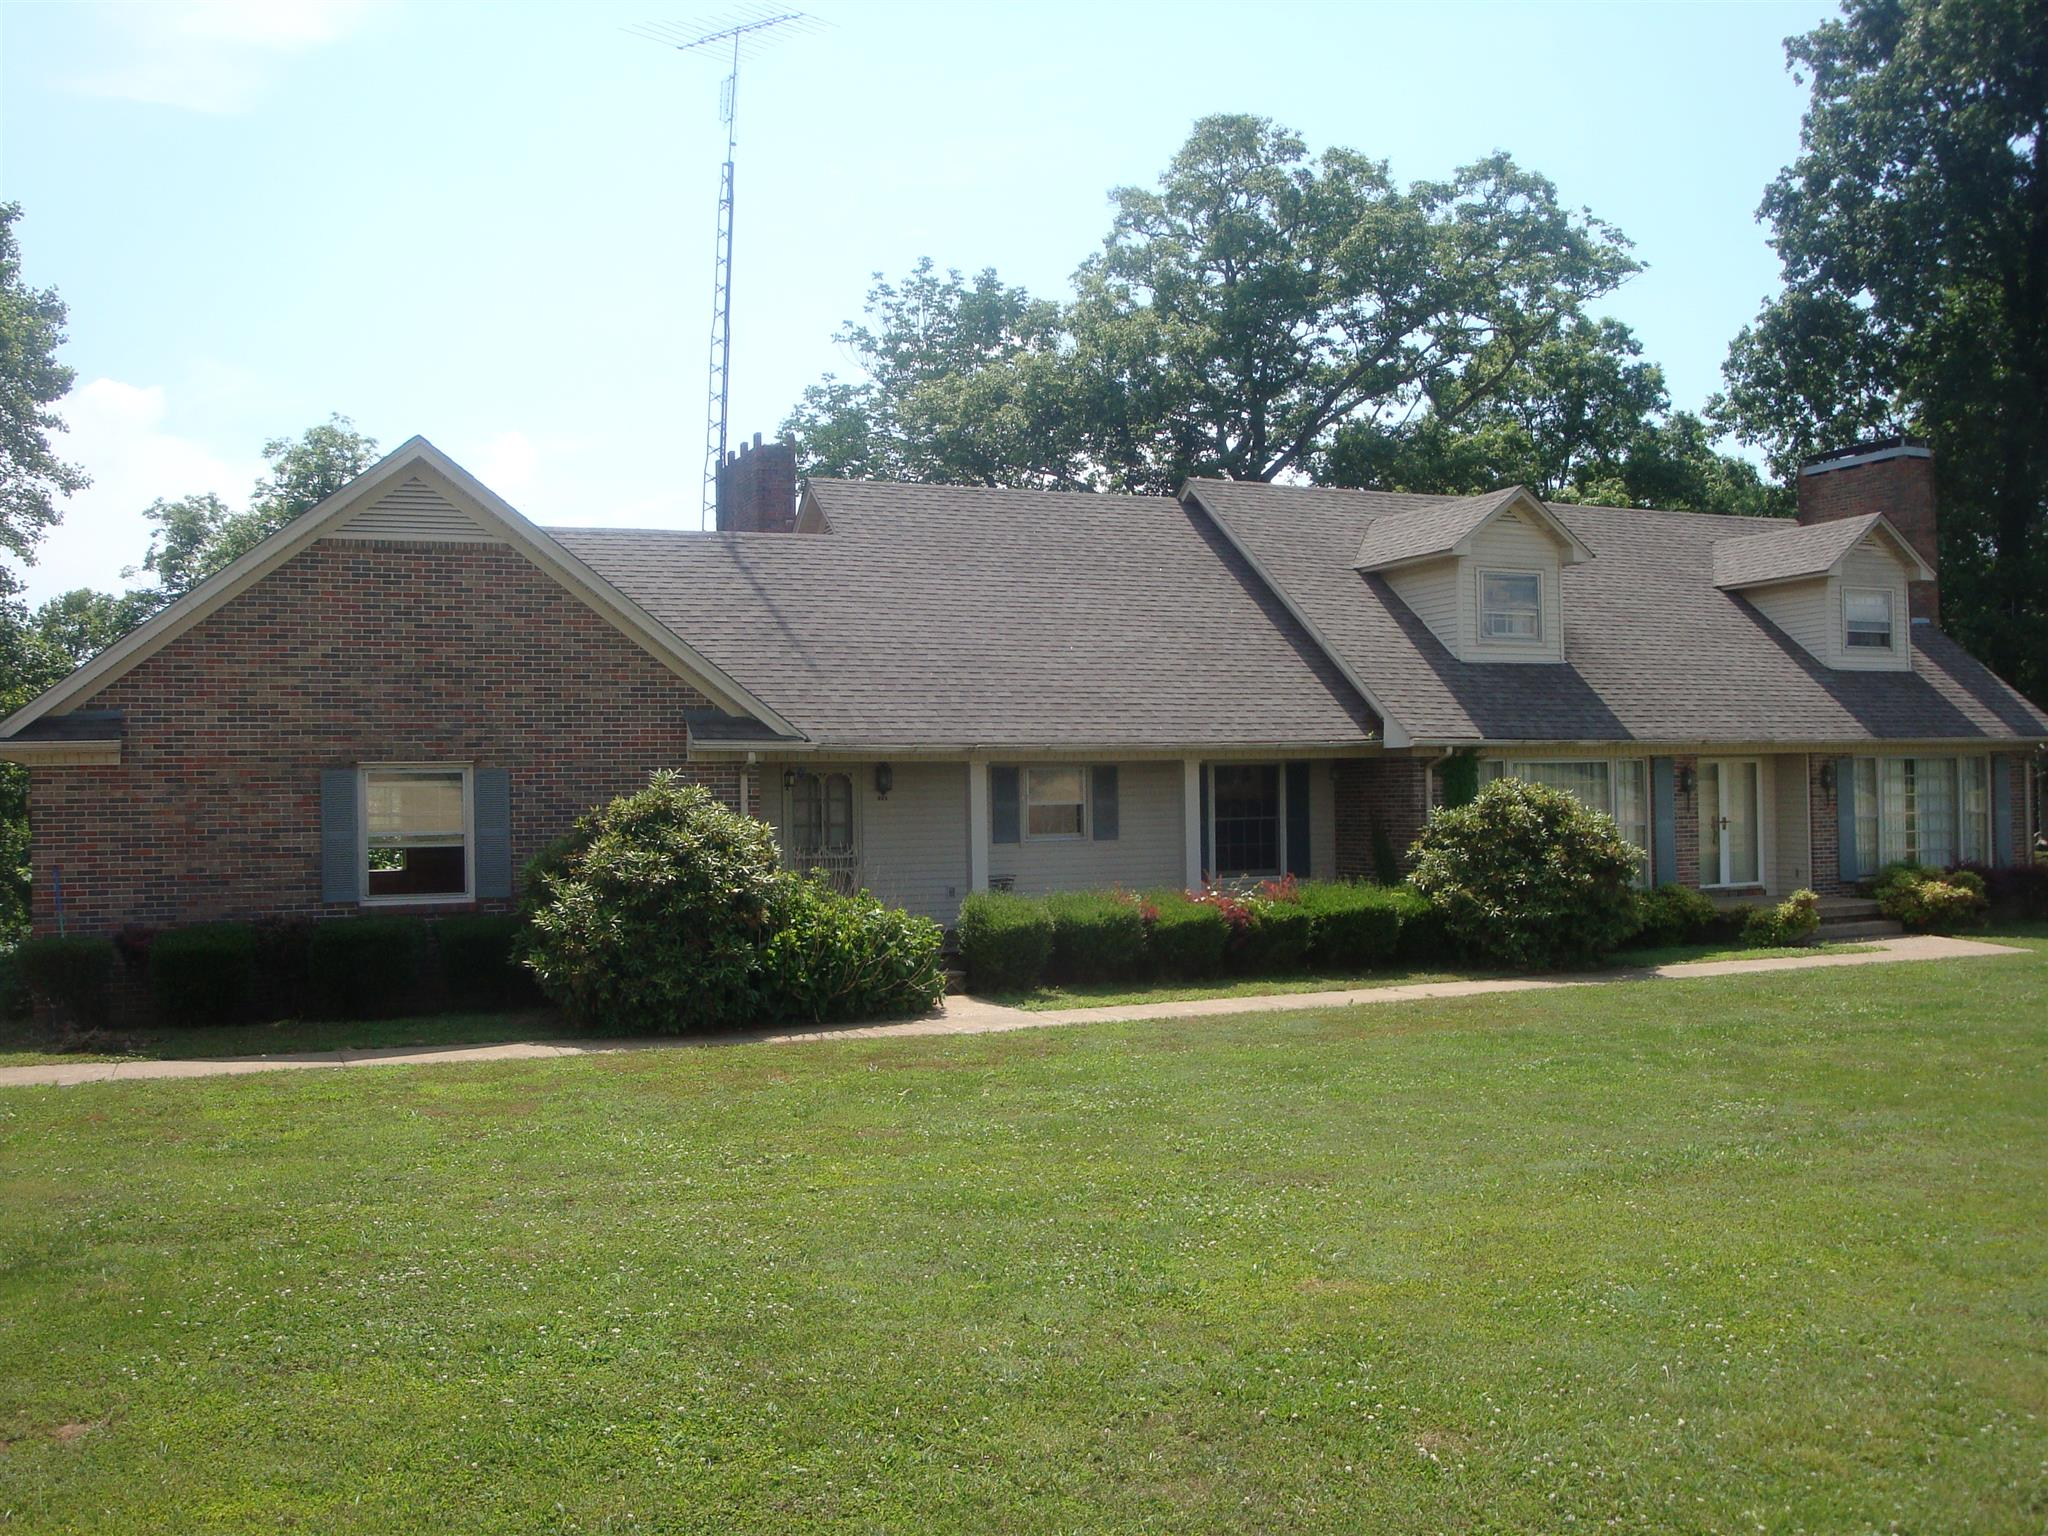 129 Greenwood Rd, Lawrenceburg, TN 38464 - Lawrenceburg, TN real estate listing